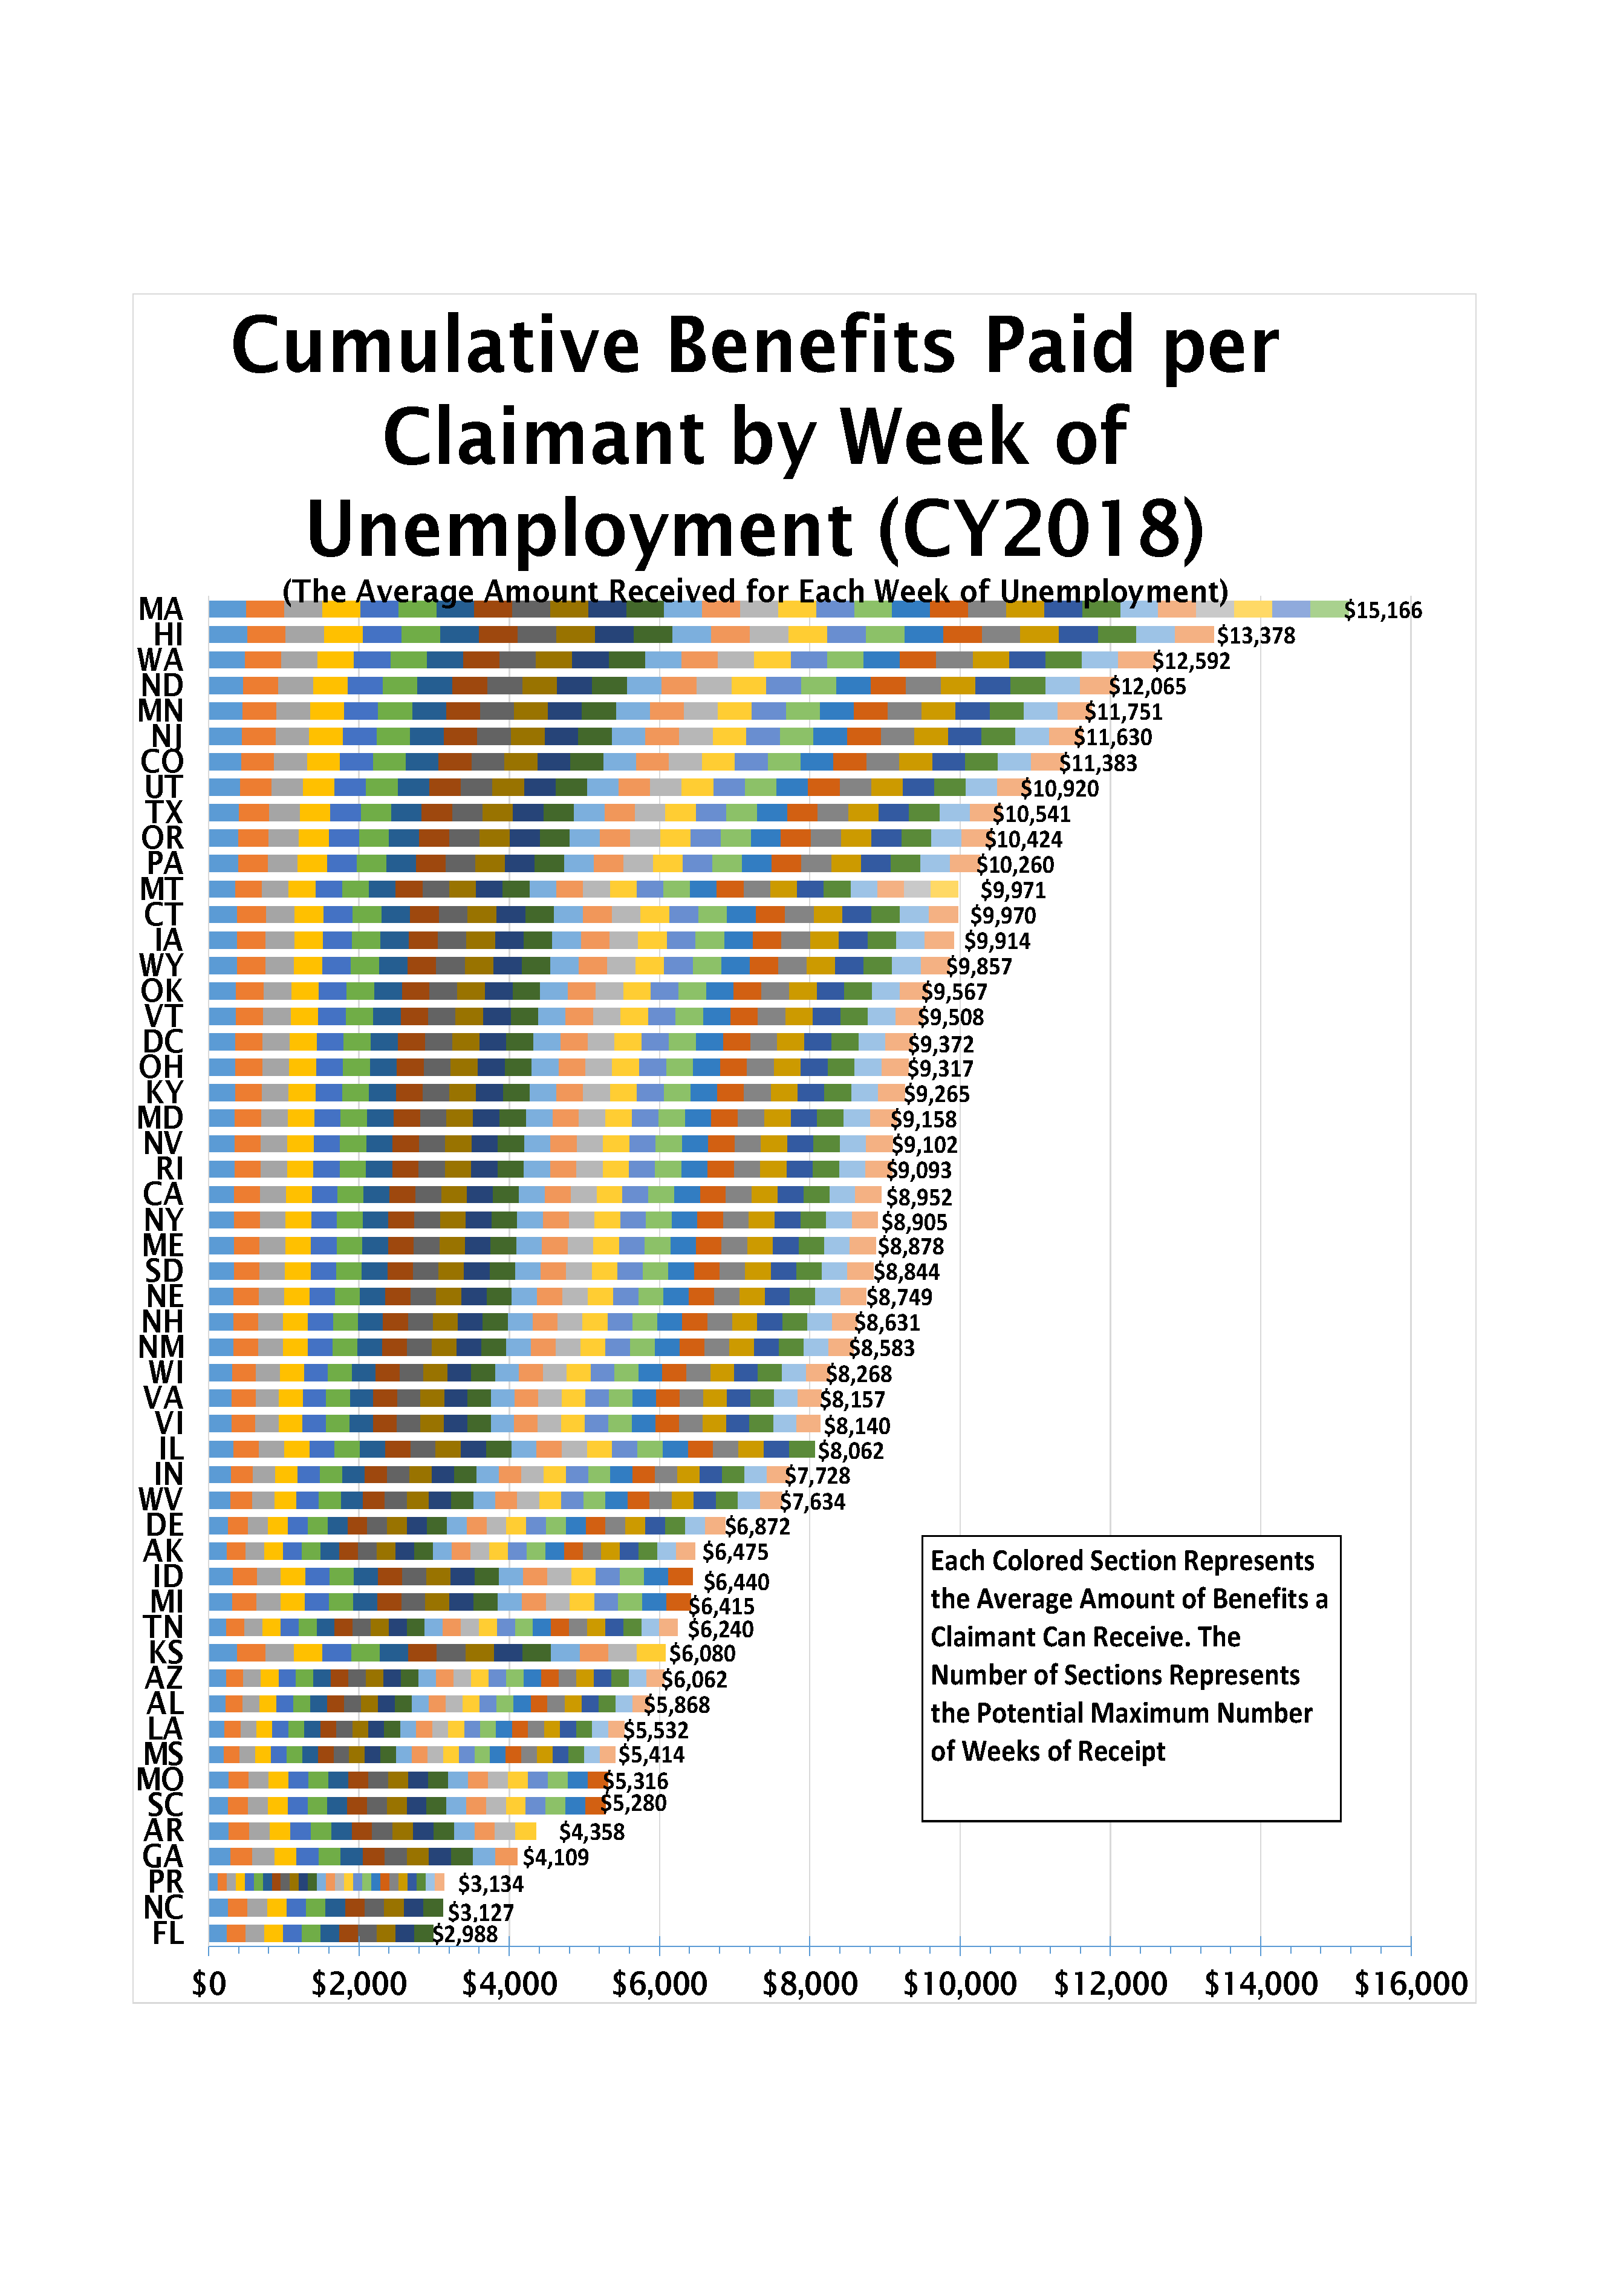 Benefits per Claimant by Week